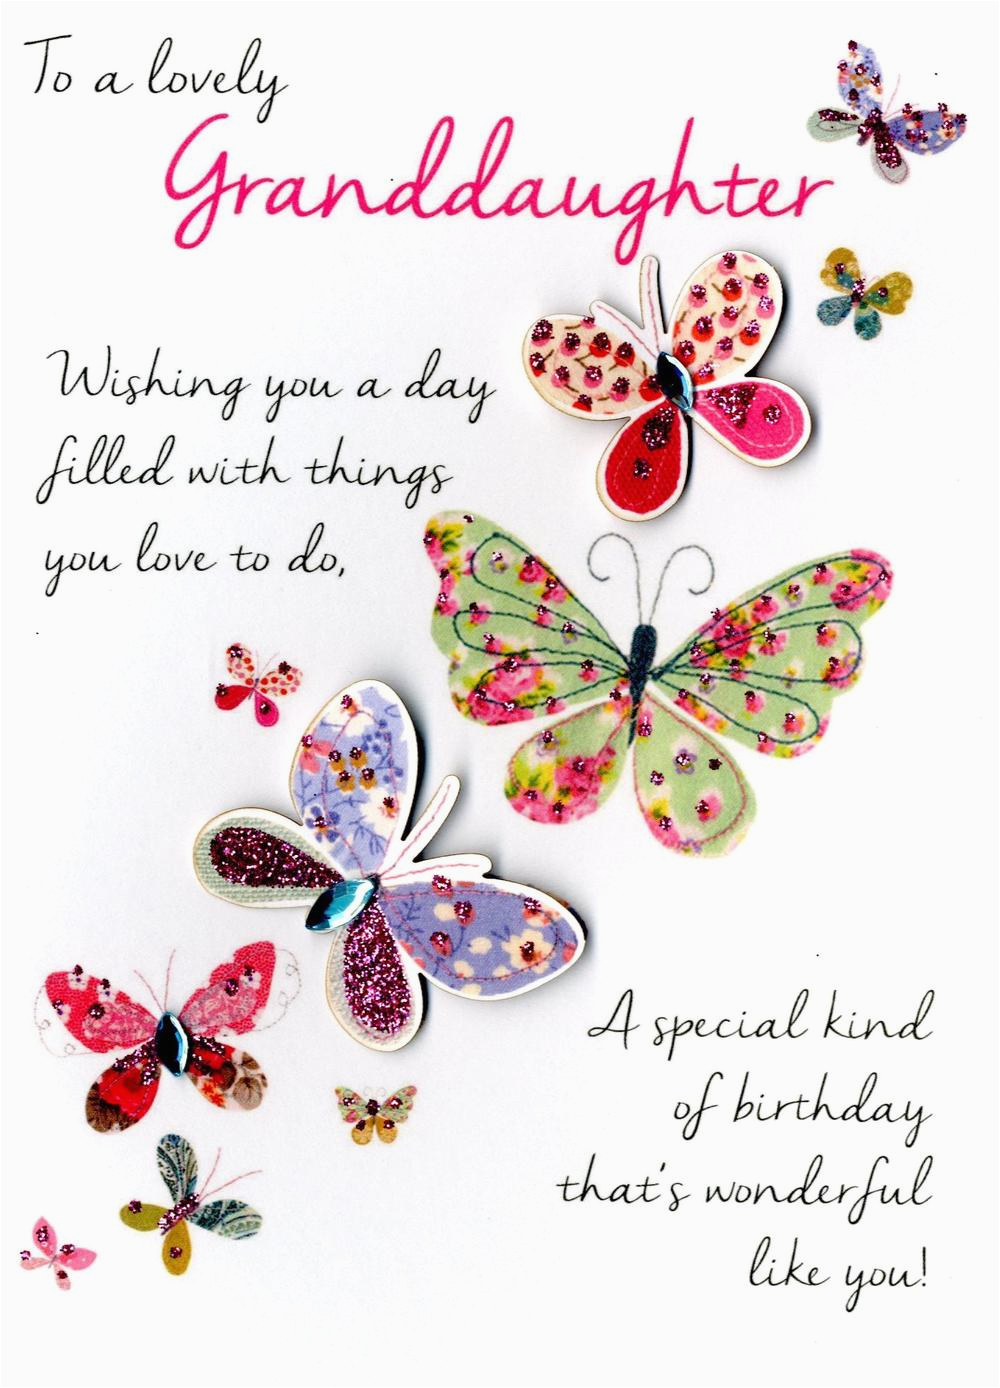 Granddaughter Birthday Card Images Lovely Greeting Cards